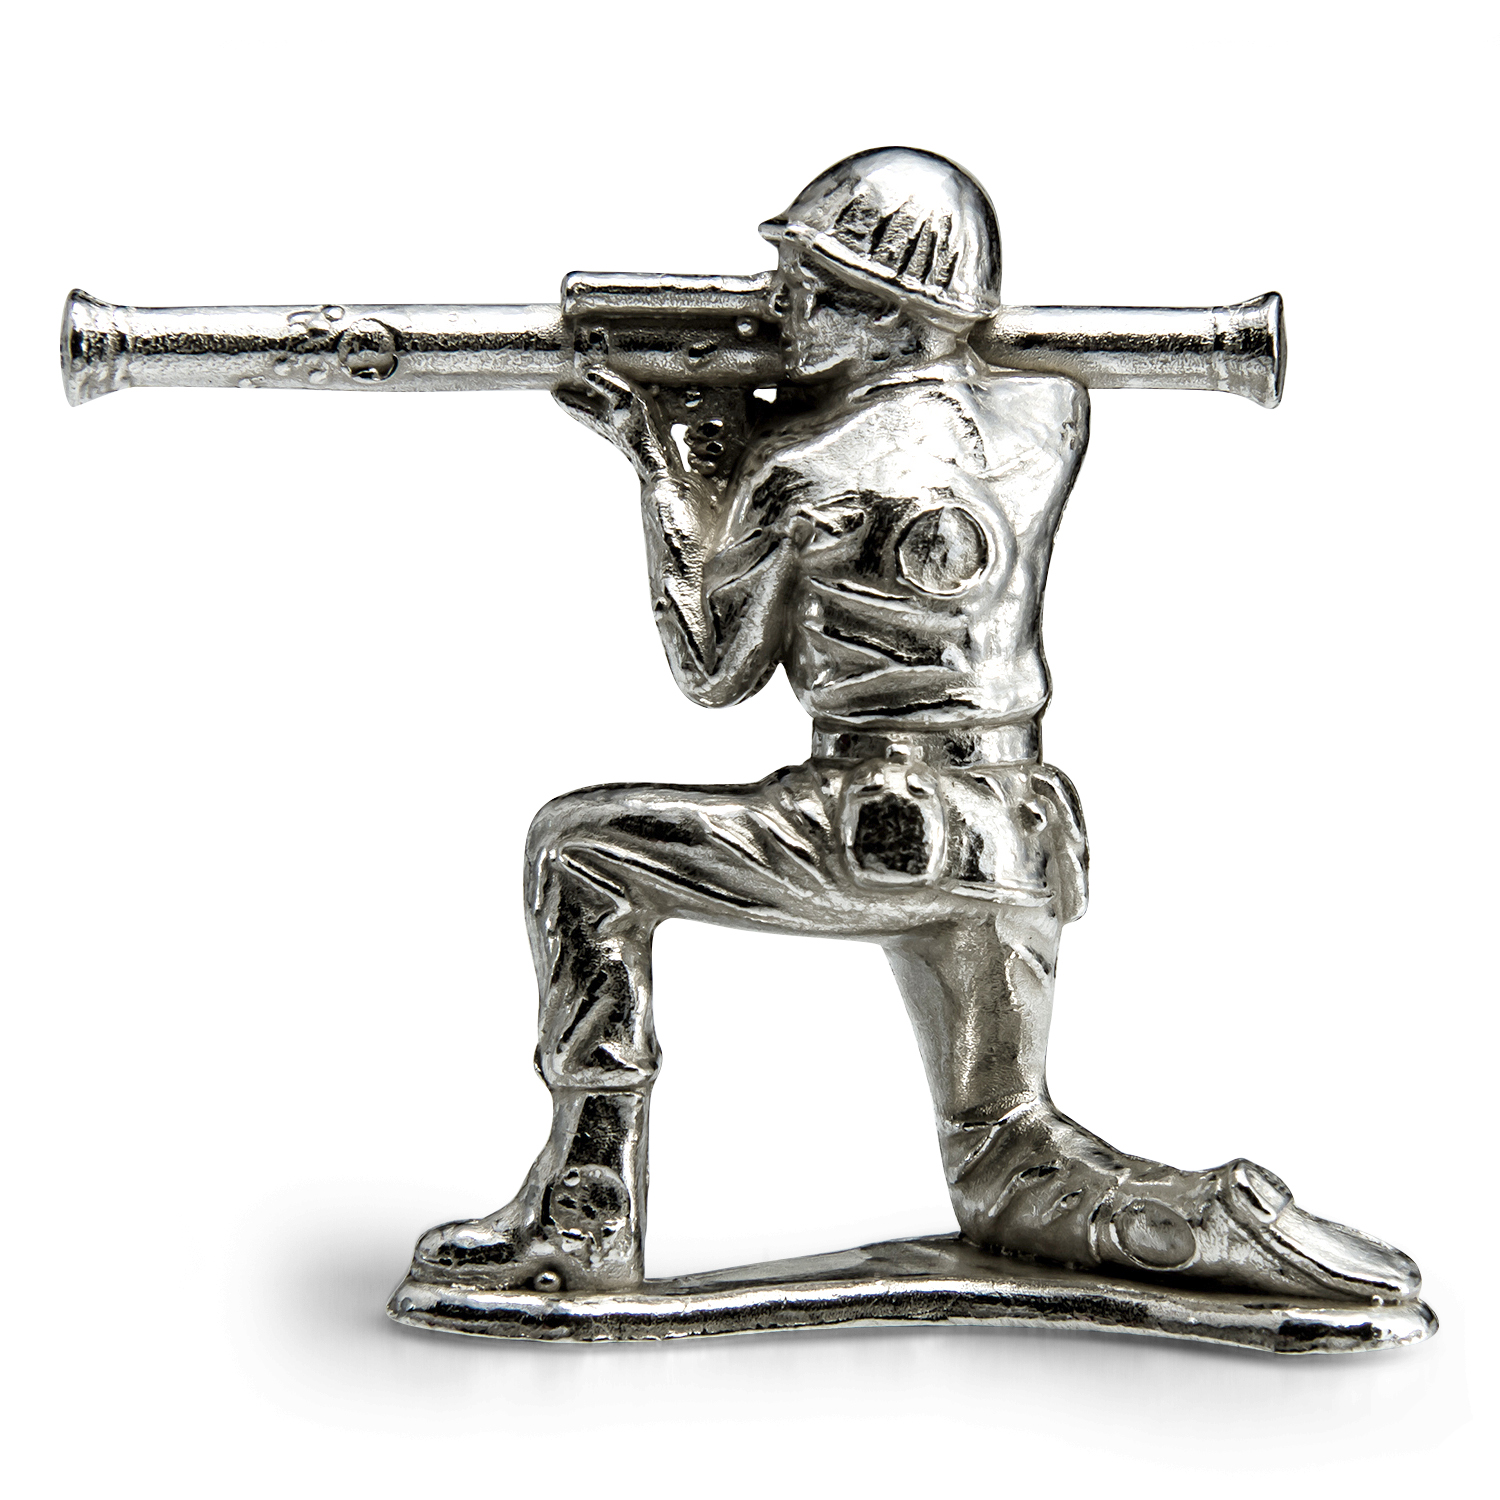 Silver Army Figurine - Stovepipe Silver Soldier